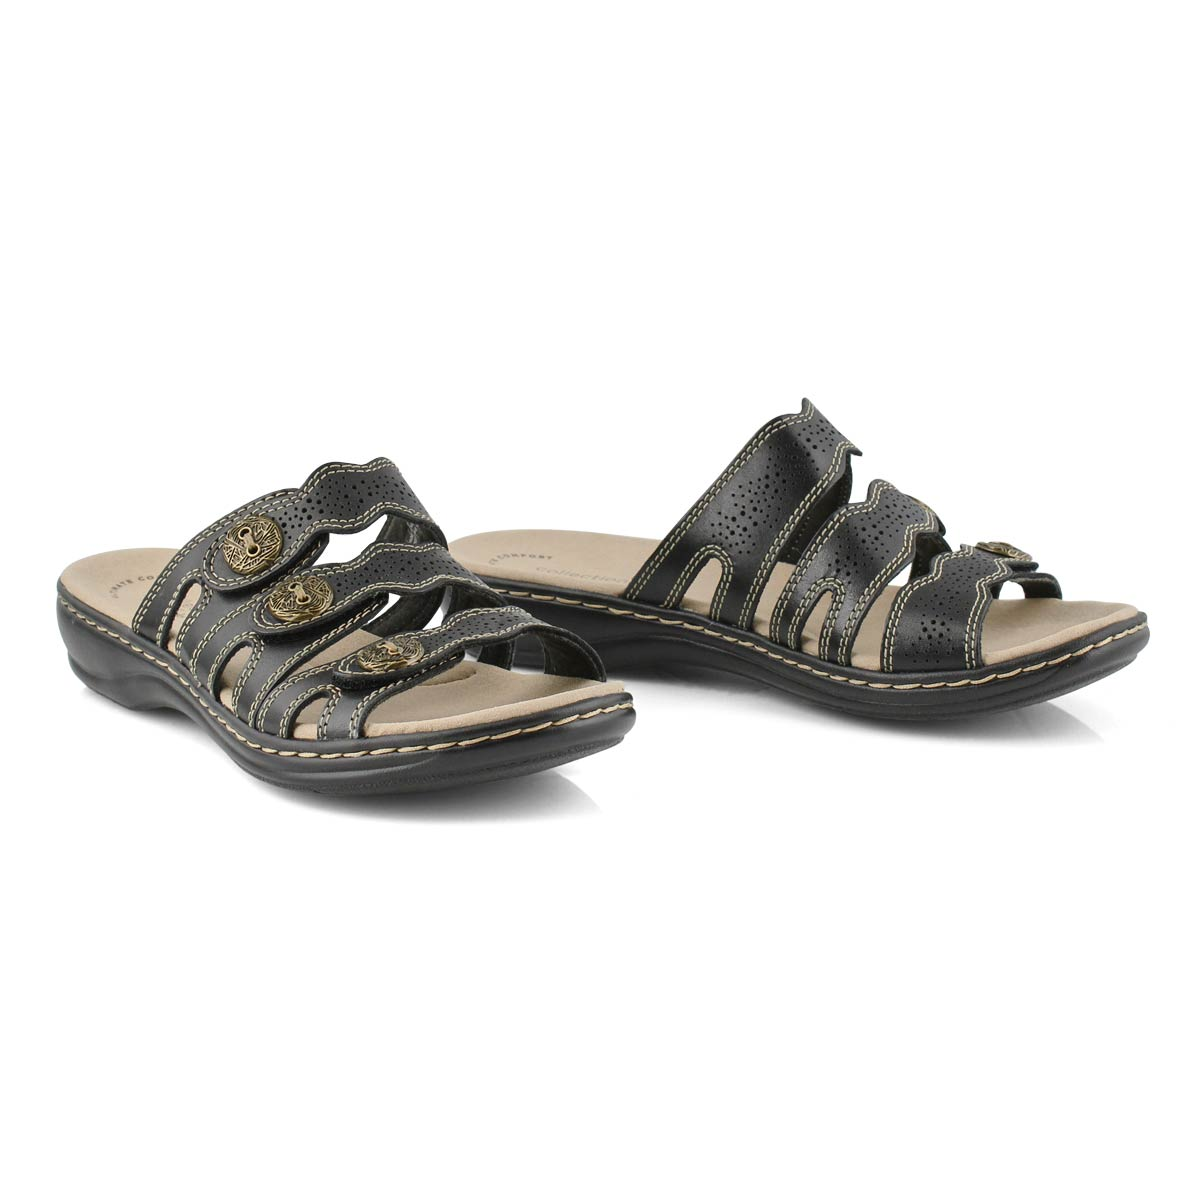 Lds Leisa Grace blk casual slide sandal